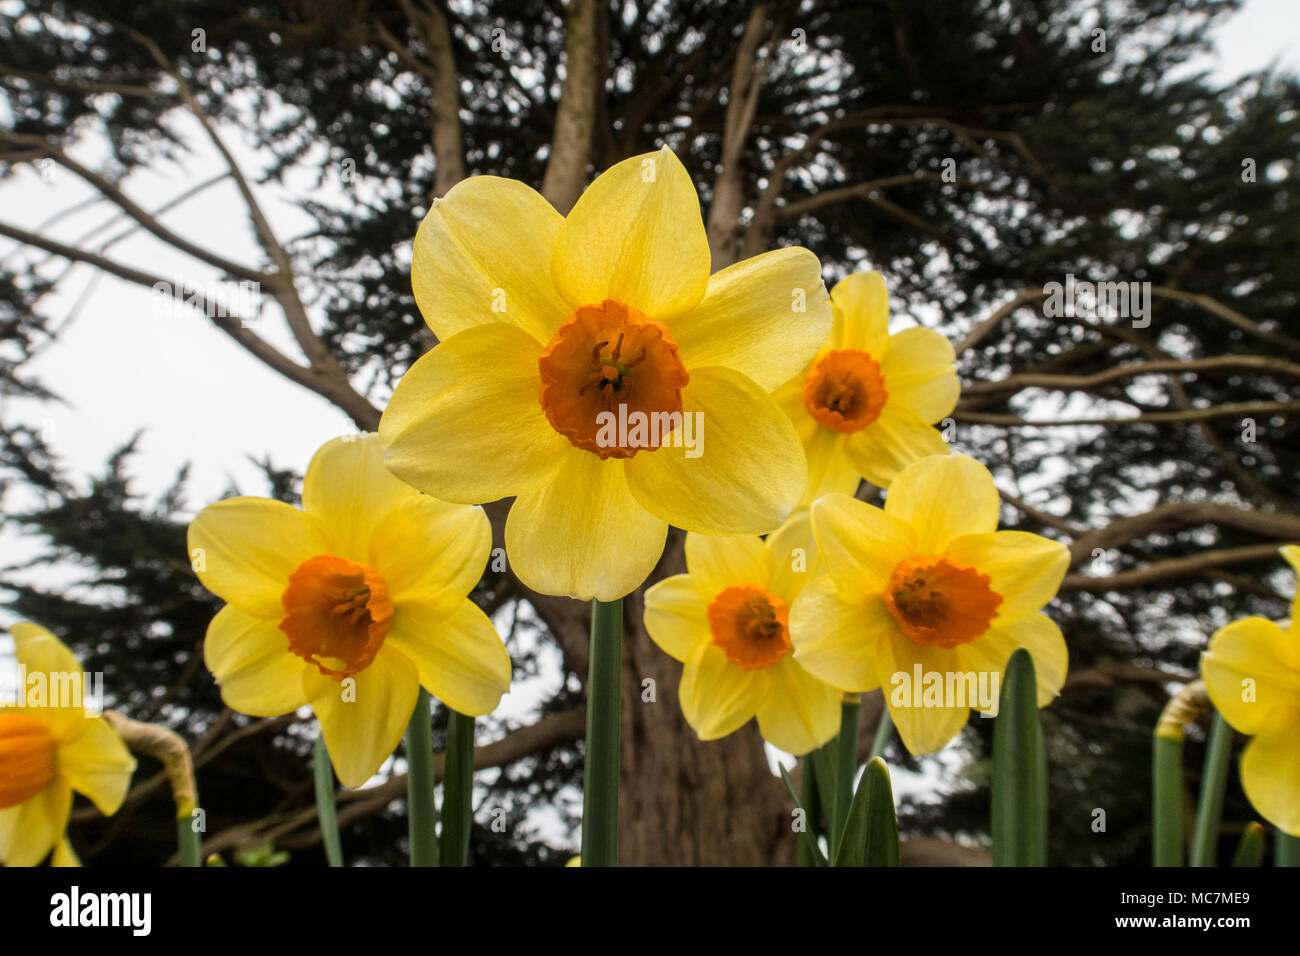 Trumpet daffodil hero narcissus yellow with orange centre spring trumpet daffodil hero narcissus yellow with orange centre spring flowers growing under a monterey cyprus tree mightylinksfo